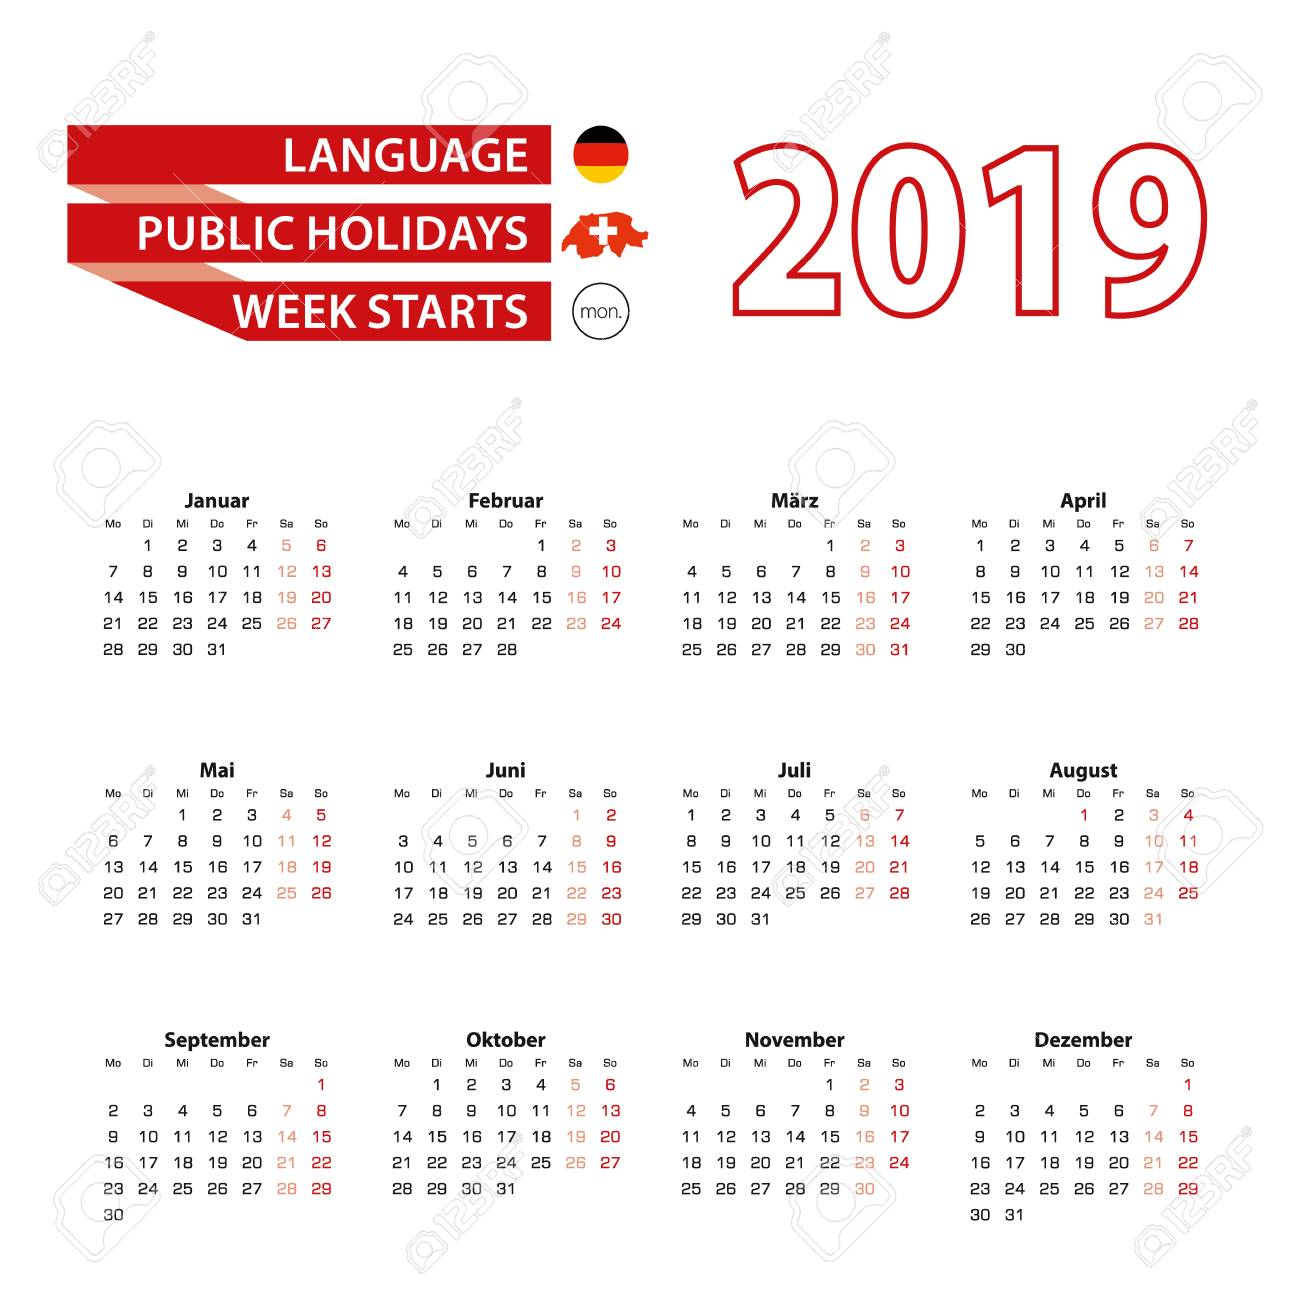 calendar 2019 in germany language with public holidays the country of switzerland in year 2019